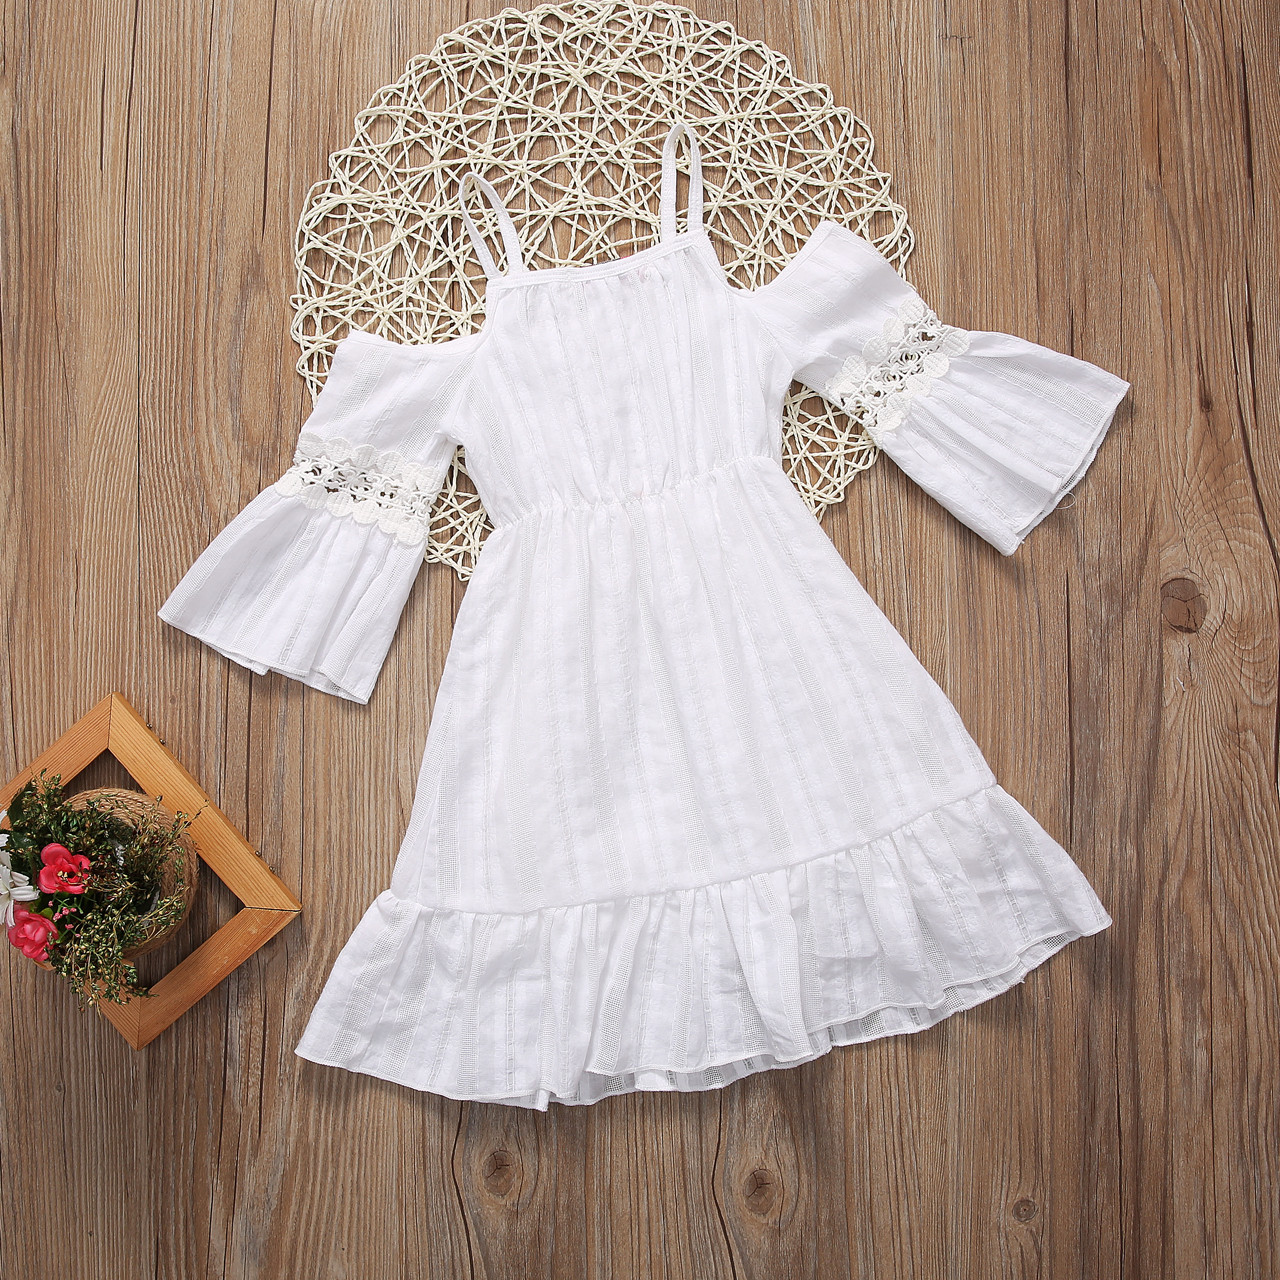 Flower Girls Princess Dress Kids Baby Party Pageant Long Sleeve Dresses Clothes